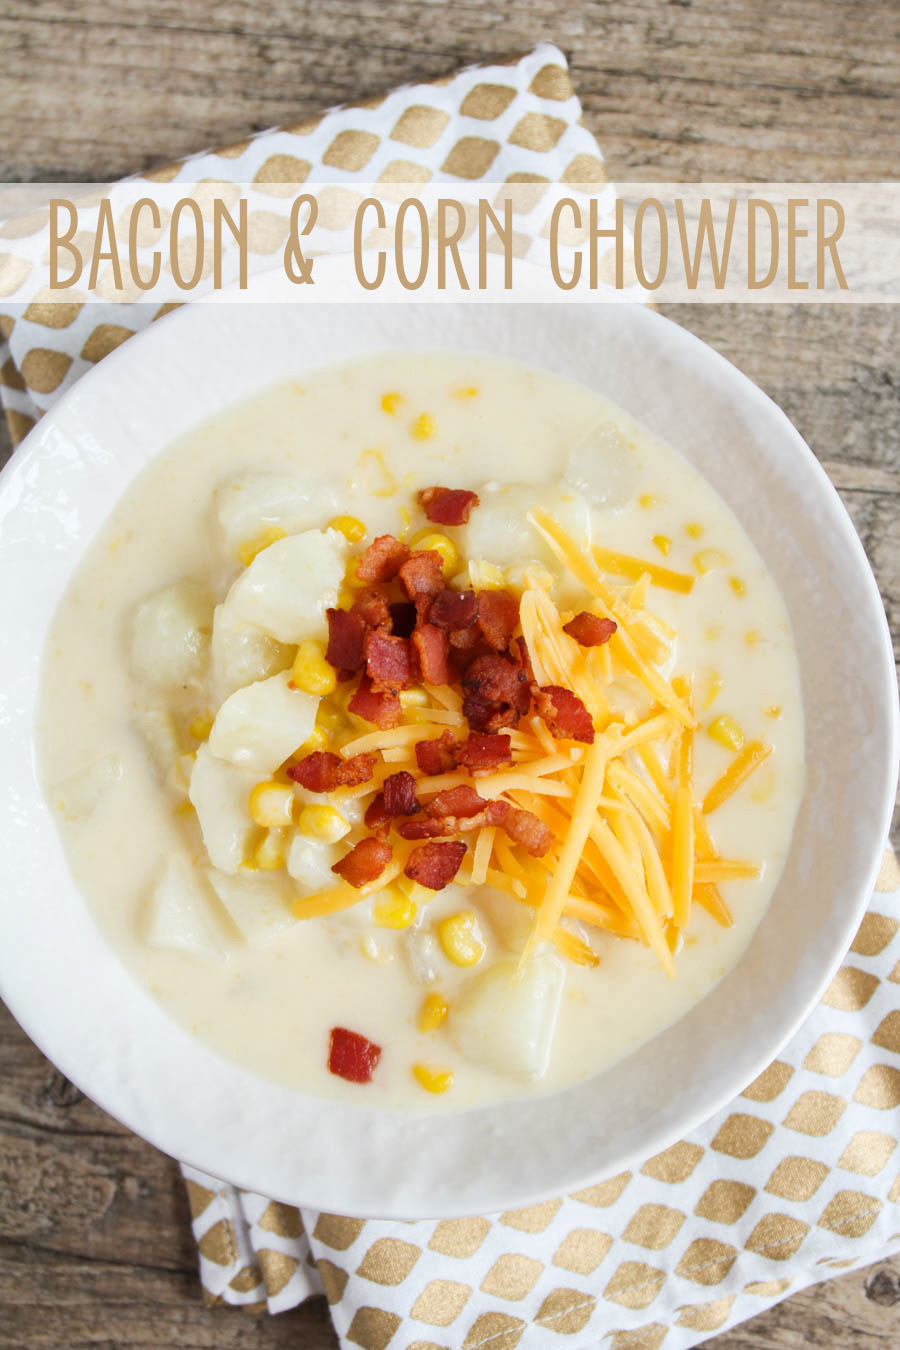 This bacon and corn chowder is perfect for a cold winter night! It's hearty and filling, and so easy to make!